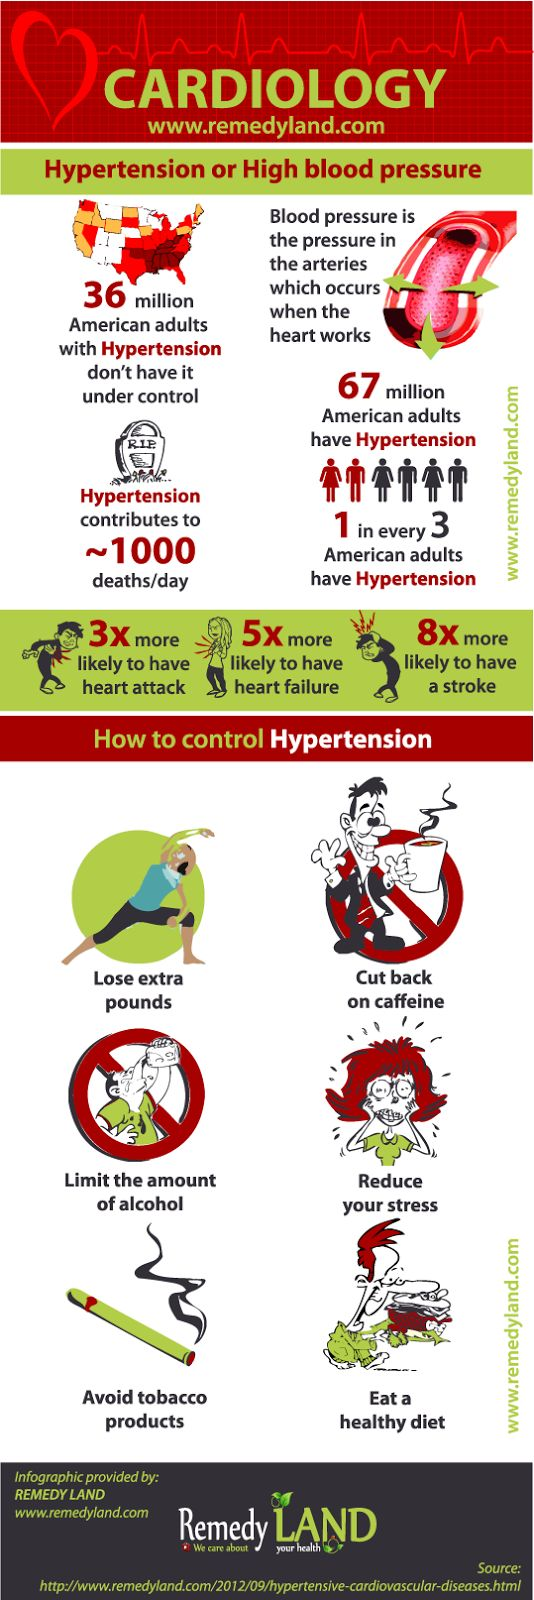 8 best high blood pressure images on pinterest blood pressure all you need to know about hypertension or high blood pressure nvjuhfo Gallery